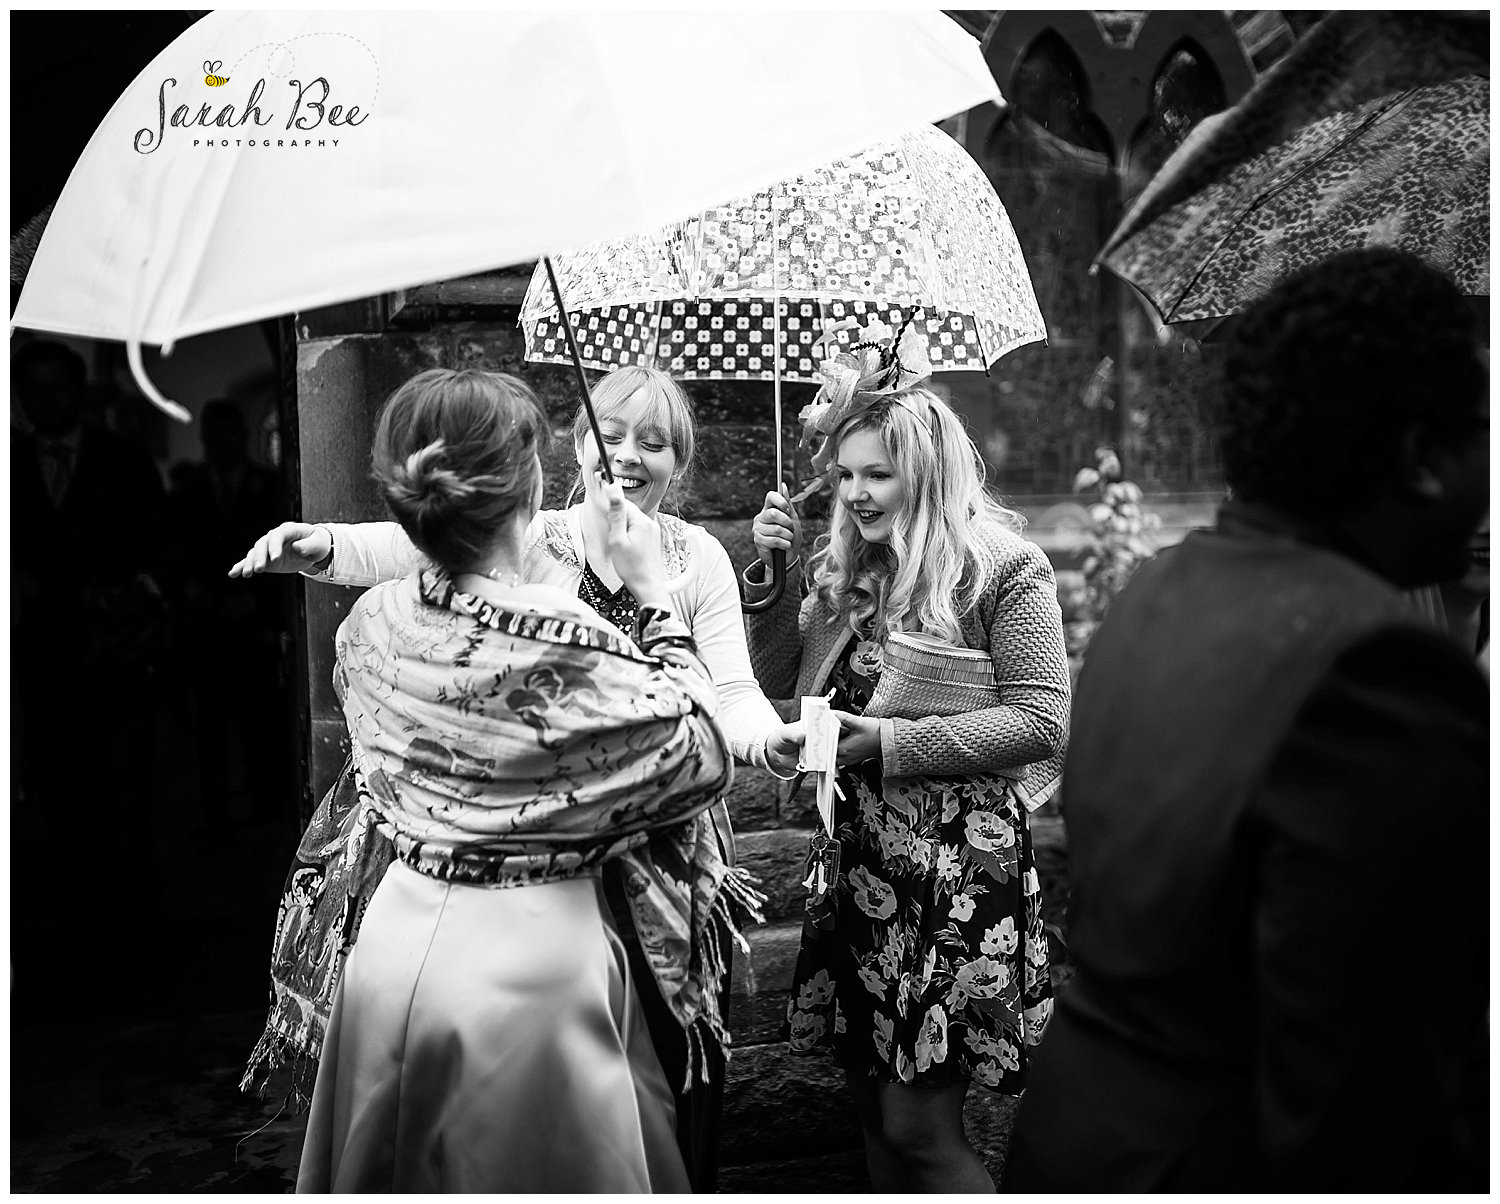 wedding photography with sarah bee photography, Peruga woodheys glossop, documentory photography wedding photographer_0196 copy.jpg